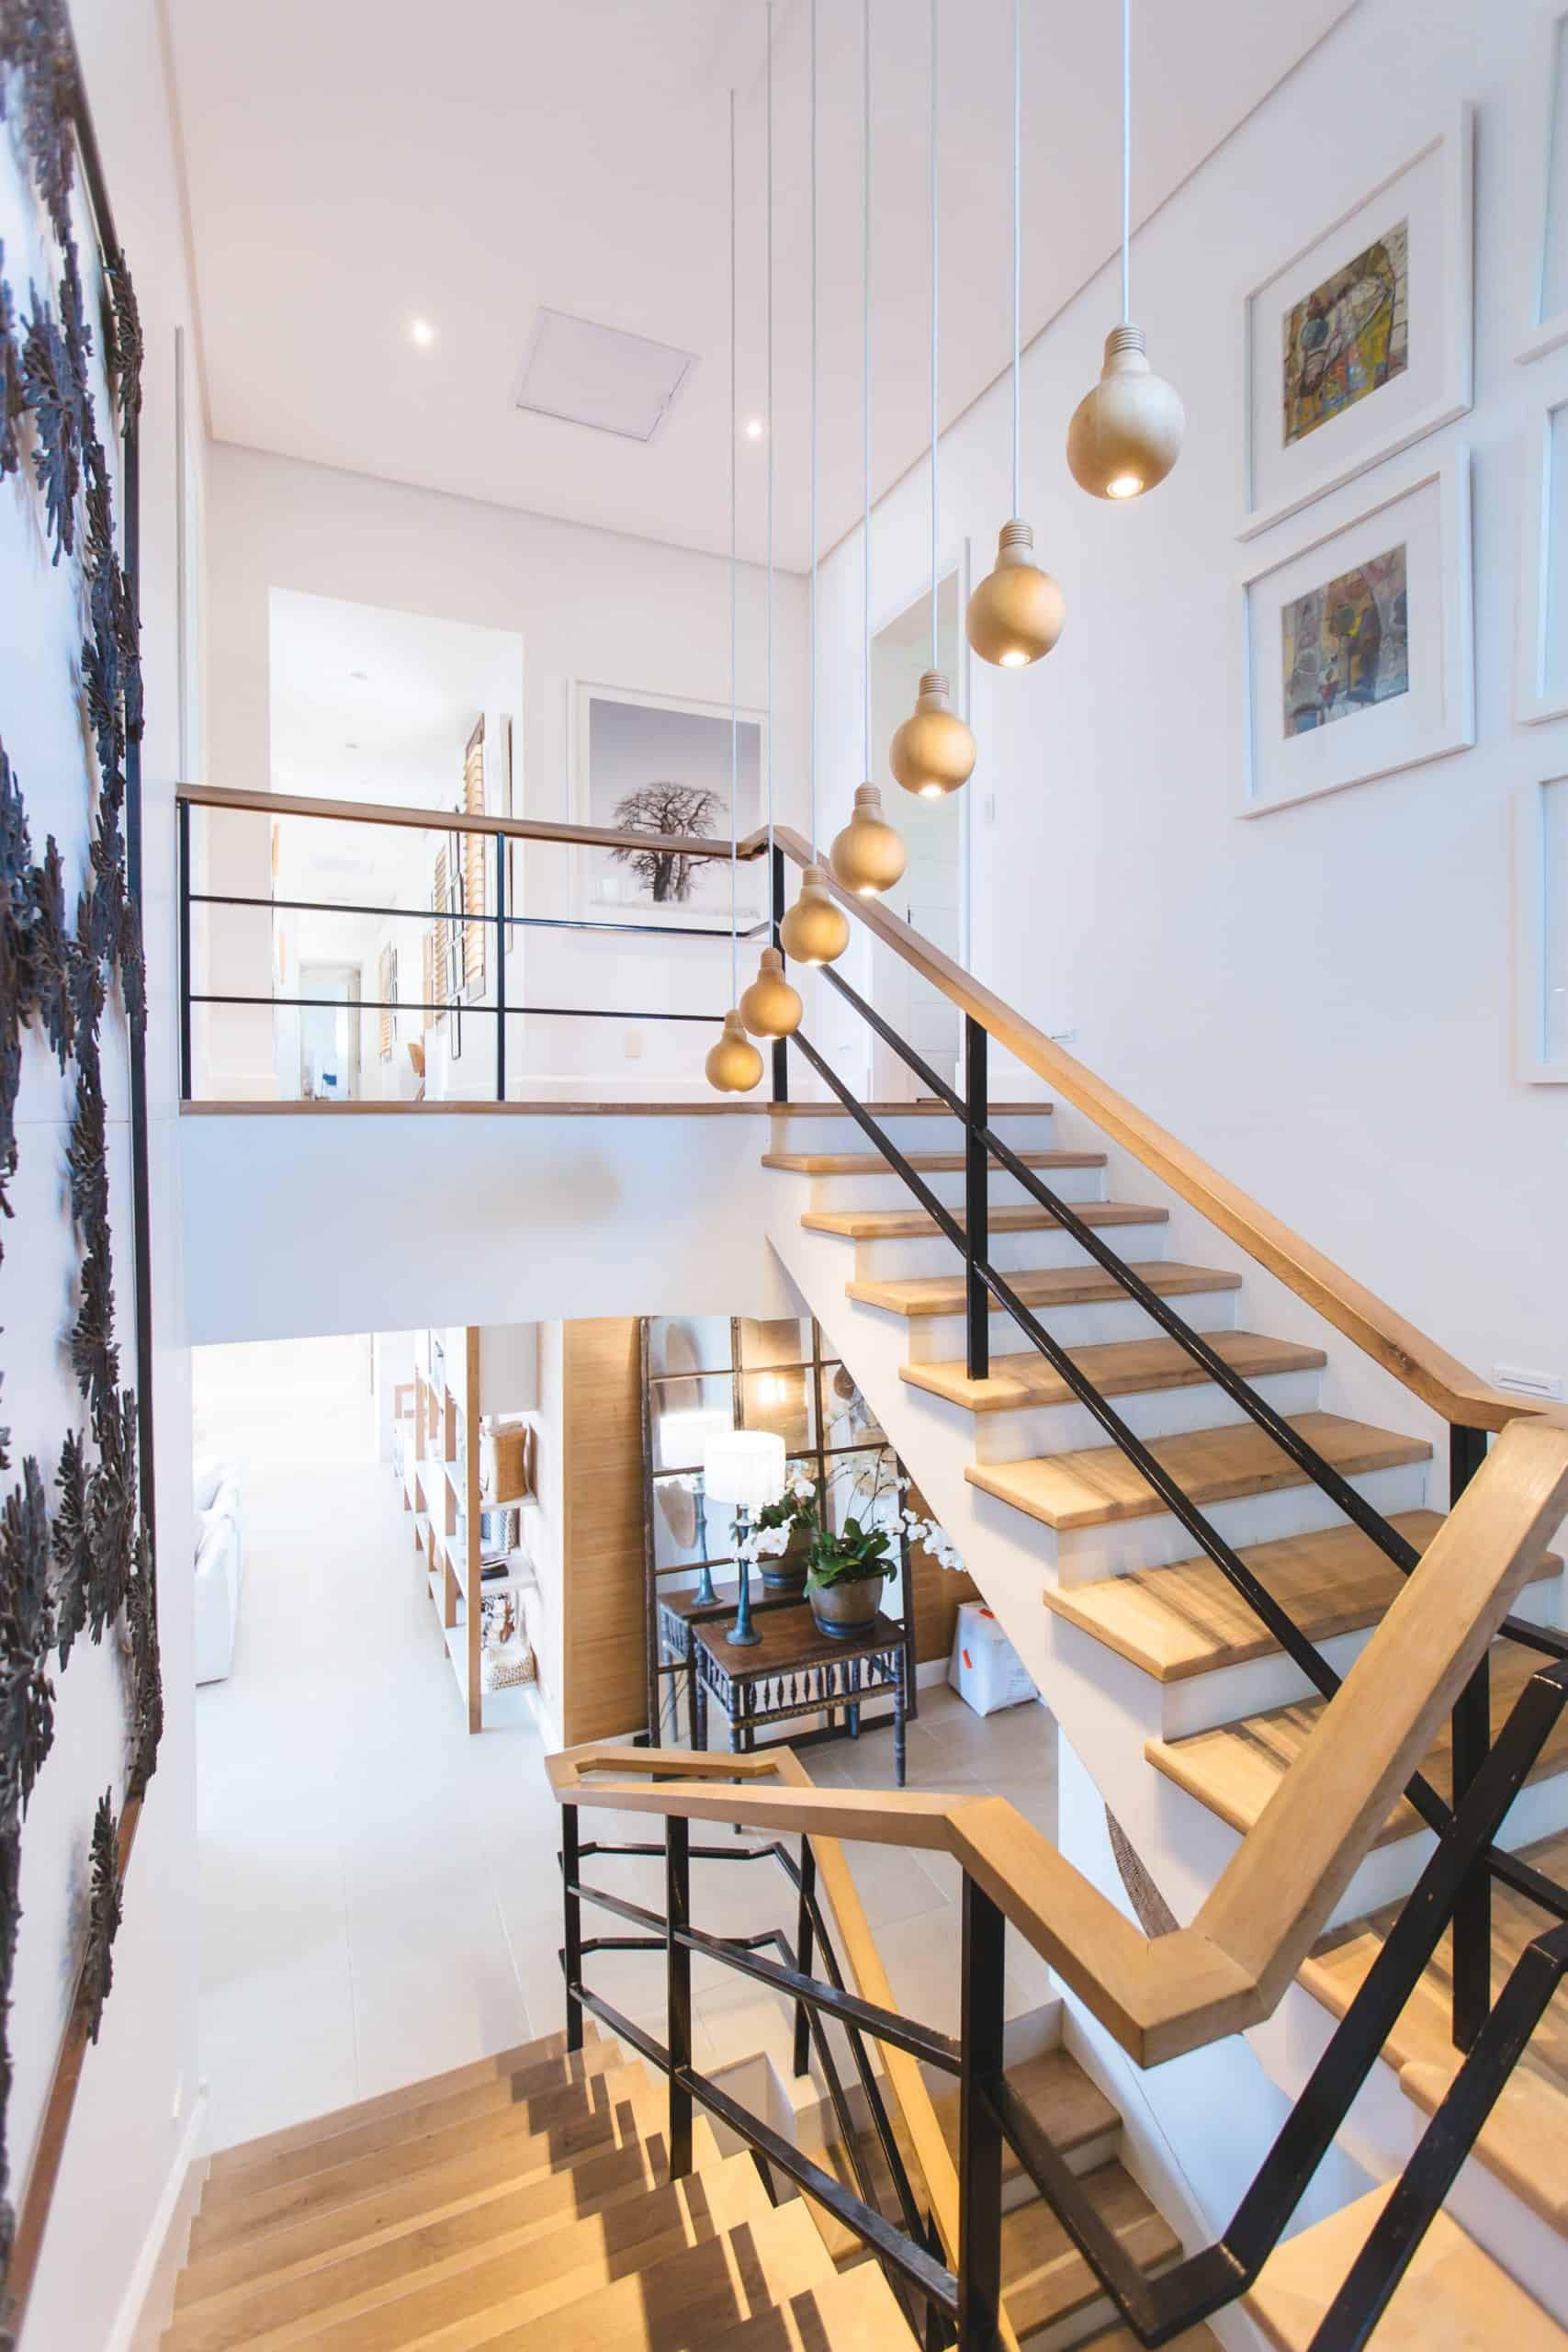 Wooden staircase with railing and white riser with hanging light setup and wall mounted paintings